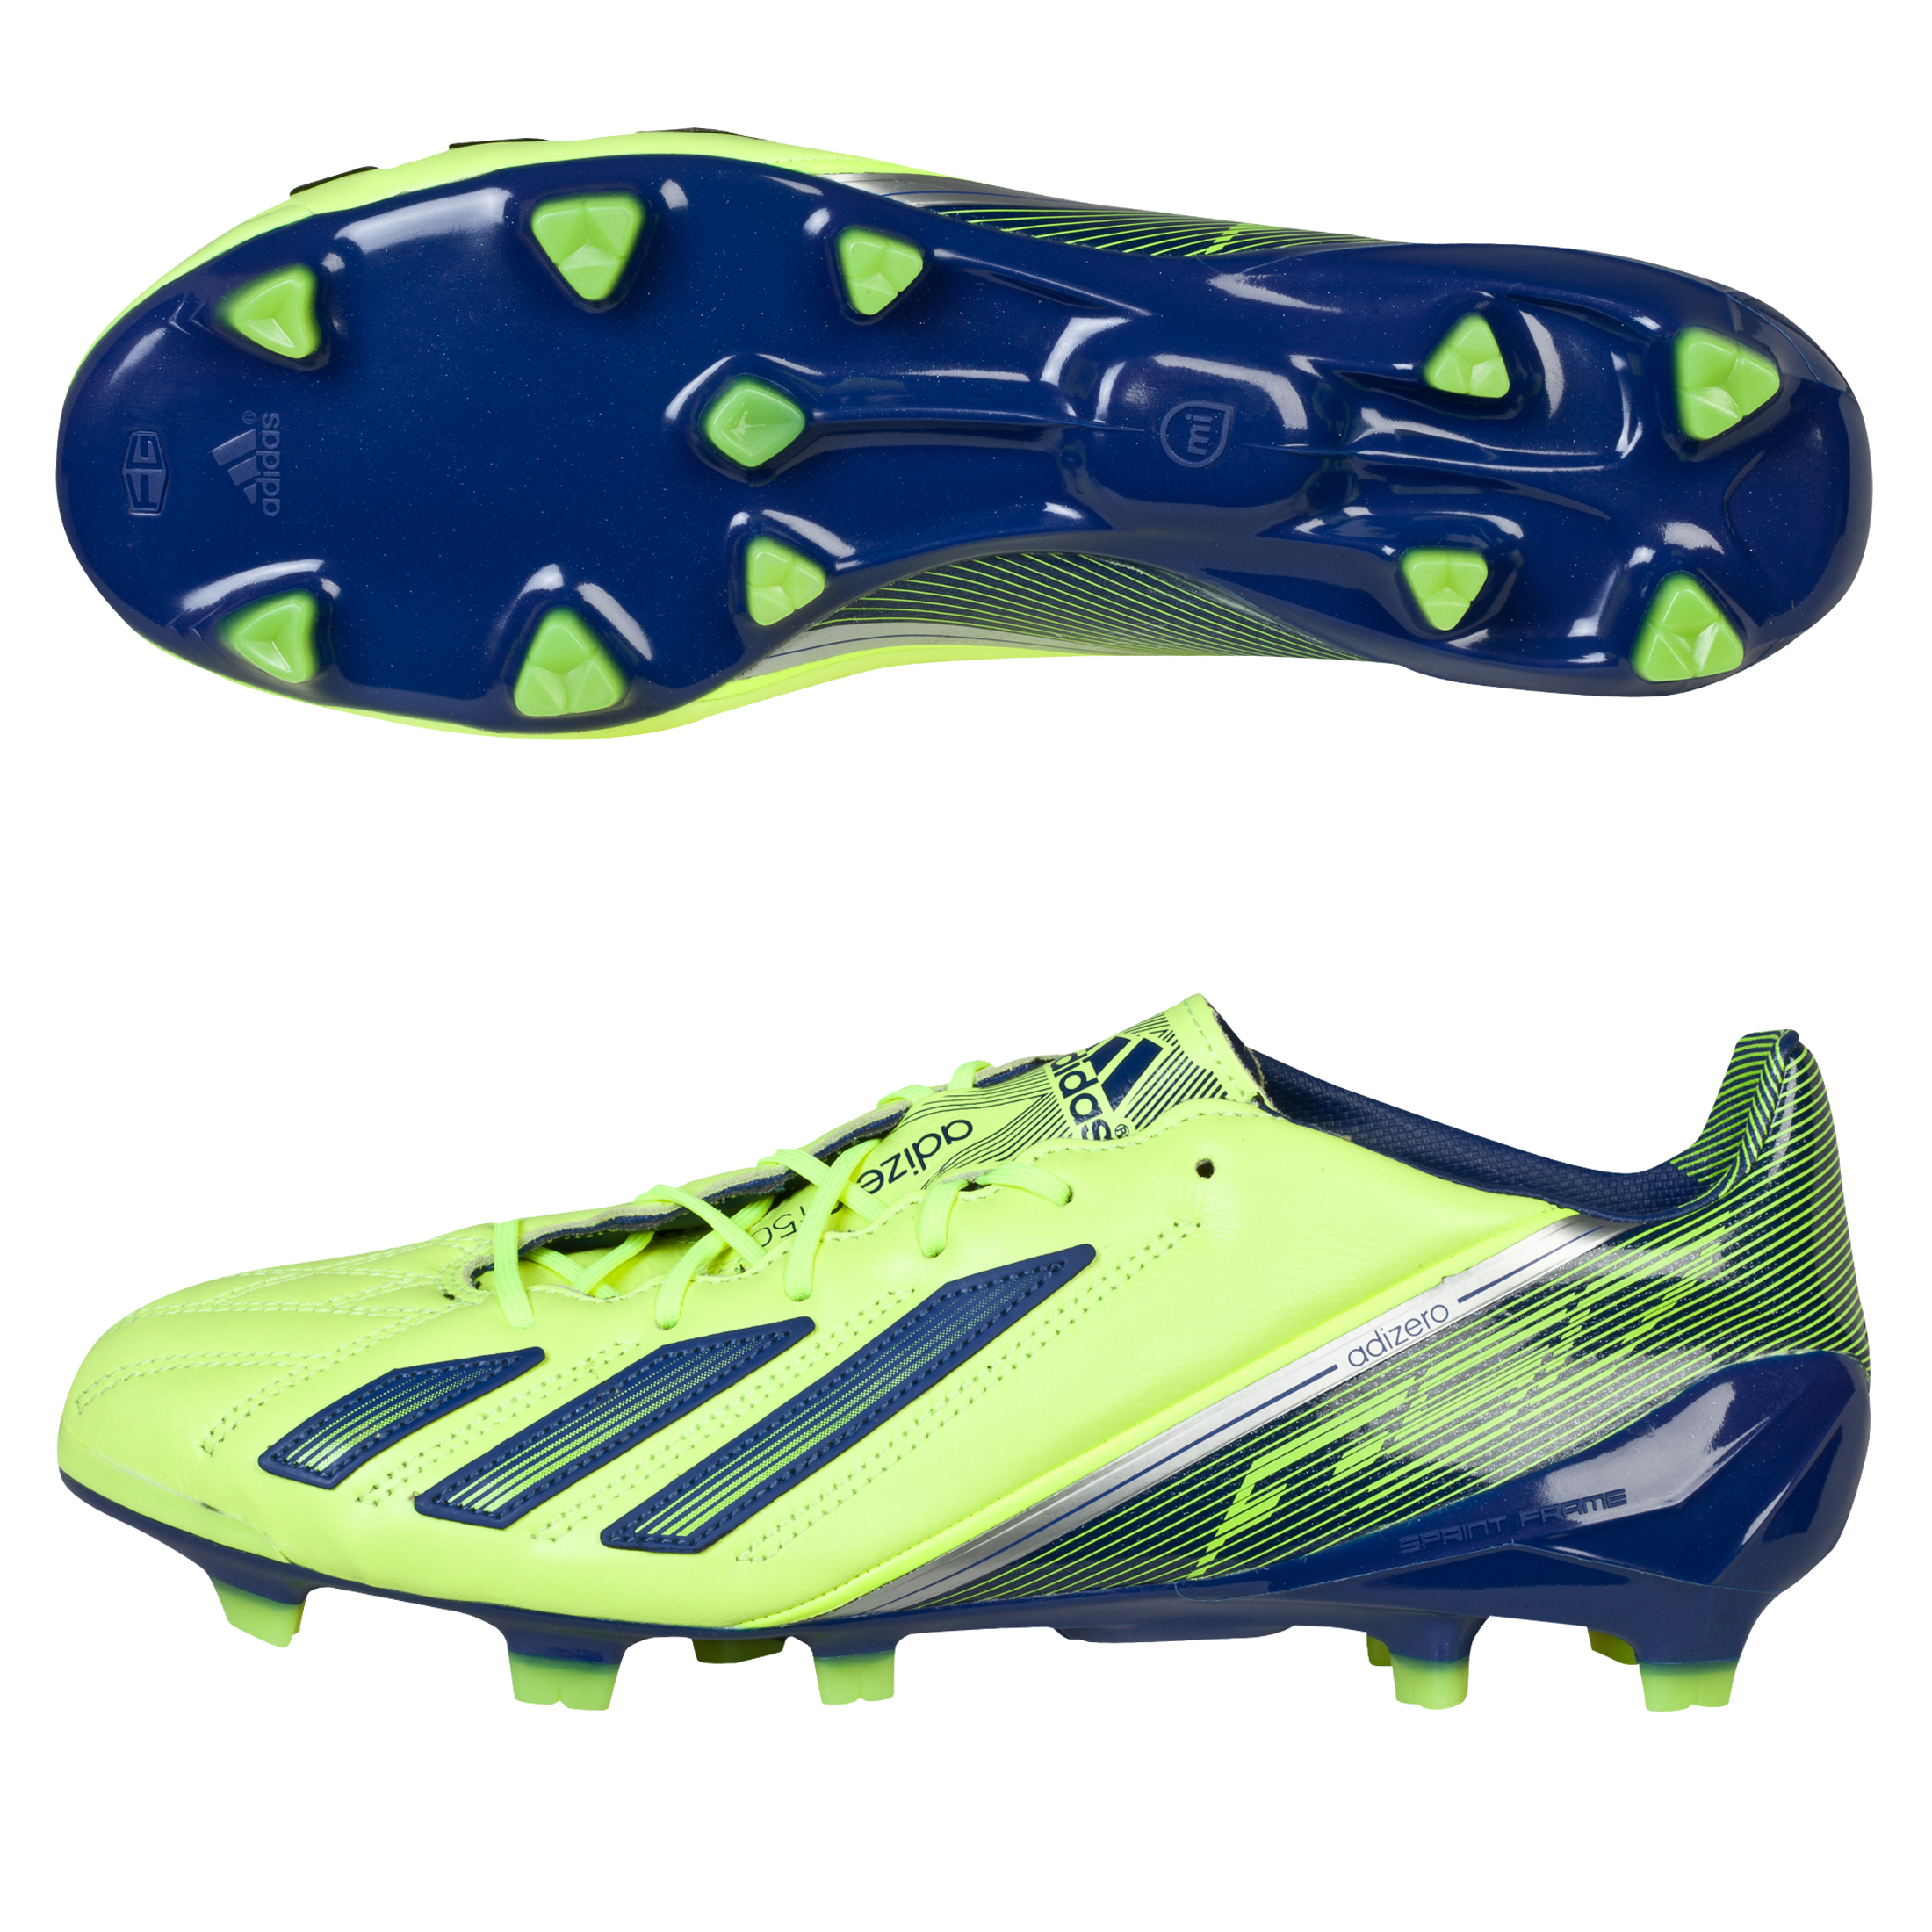 Adidas adizero F50 TRX Leather Firm Ground Football Boots Yellow